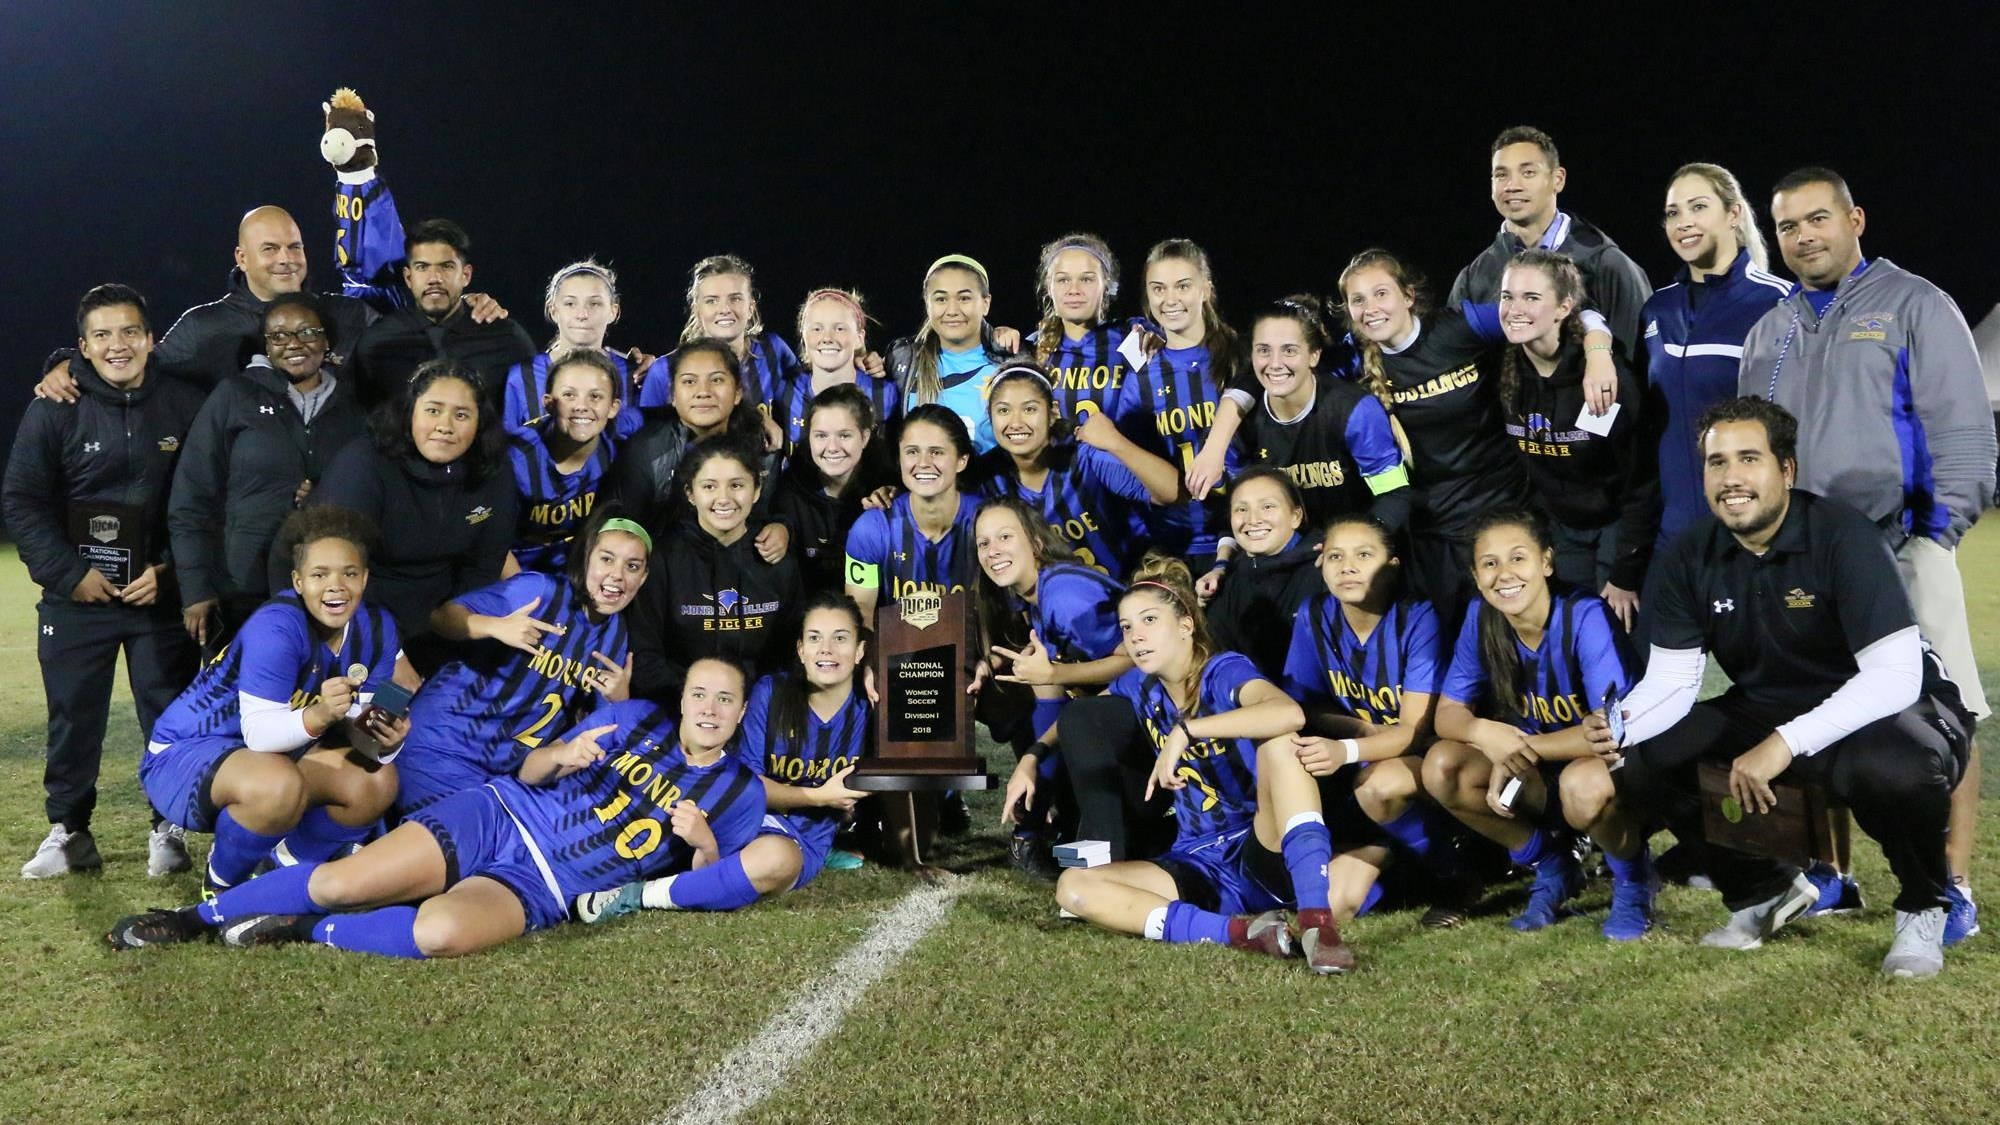 National Champions No 2 Monroe College Takes Home Njcaa National